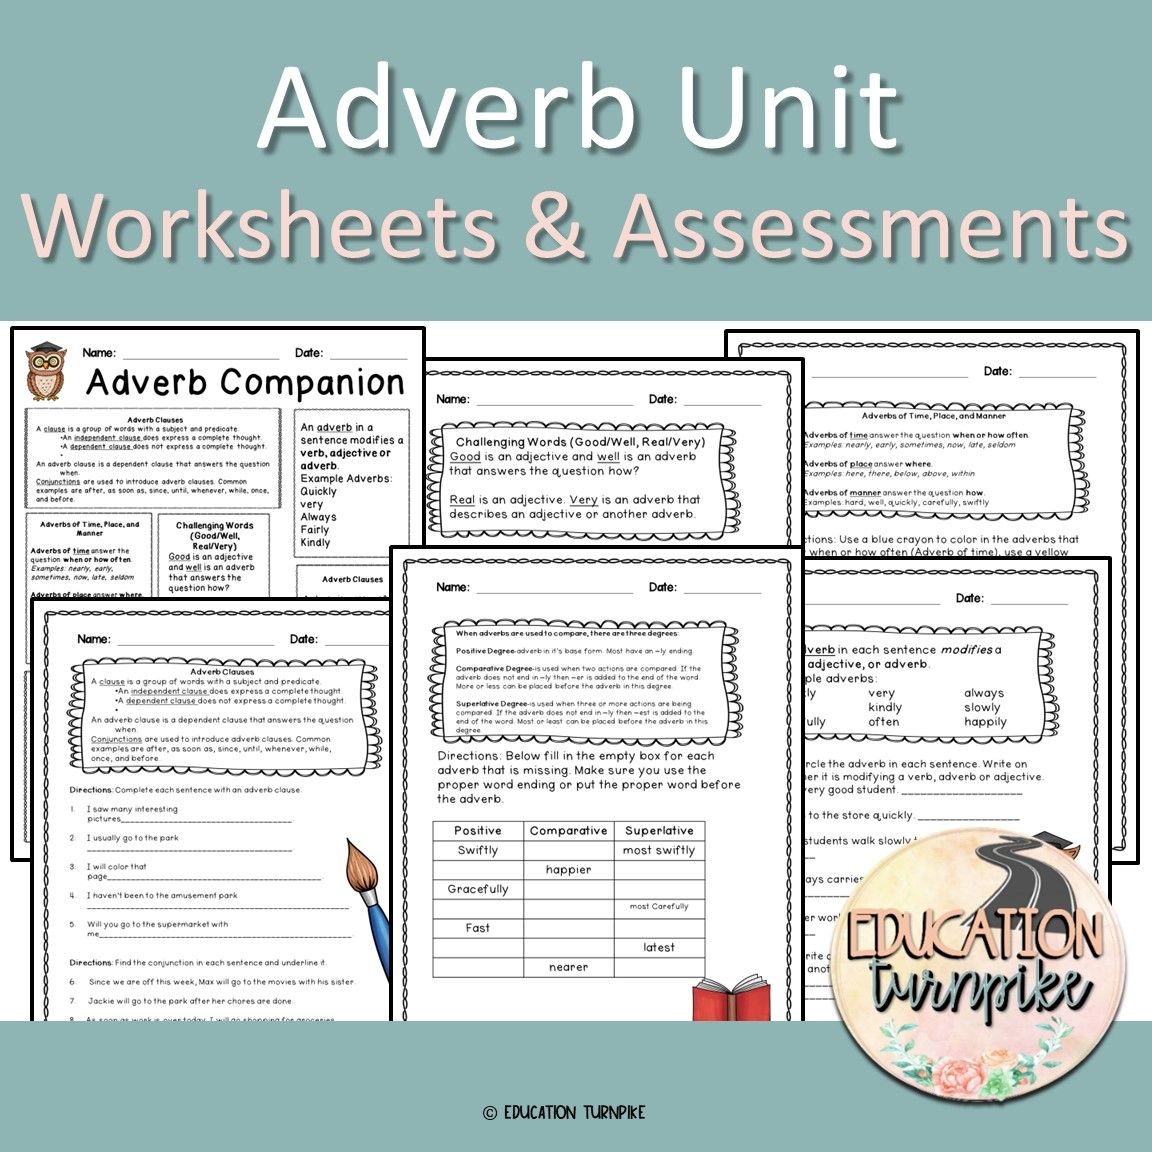 Adverb Unit Worksheets Amp Assessments With Images